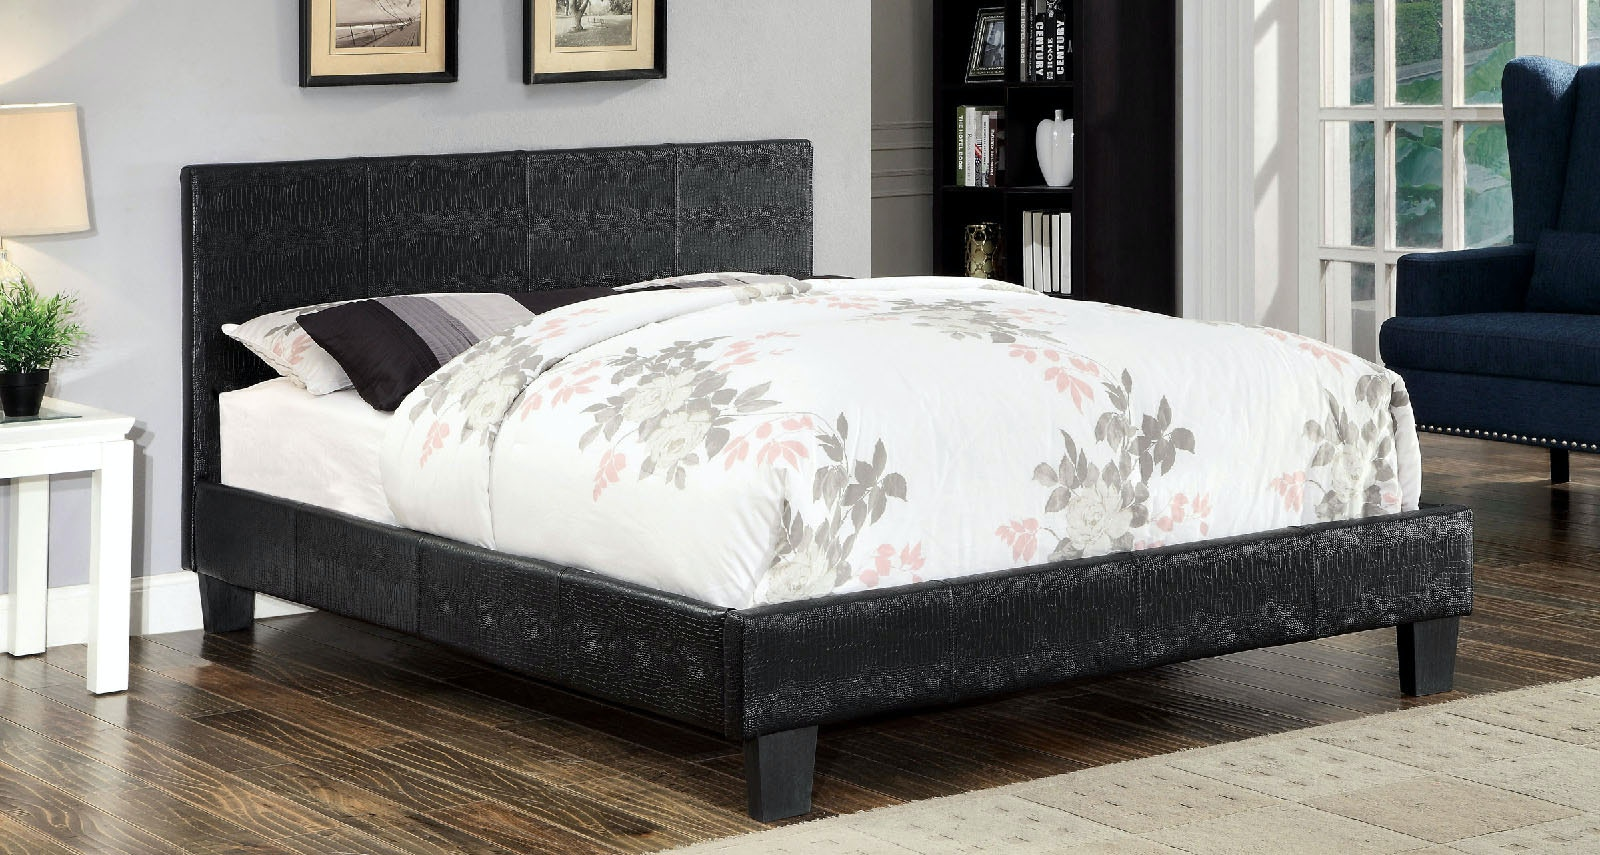 Furniture Of America Bedroom Twin Bed Footboard, Rail, 13 Pc. Slats  CM7793BK T FB/R At The Furniture Mall